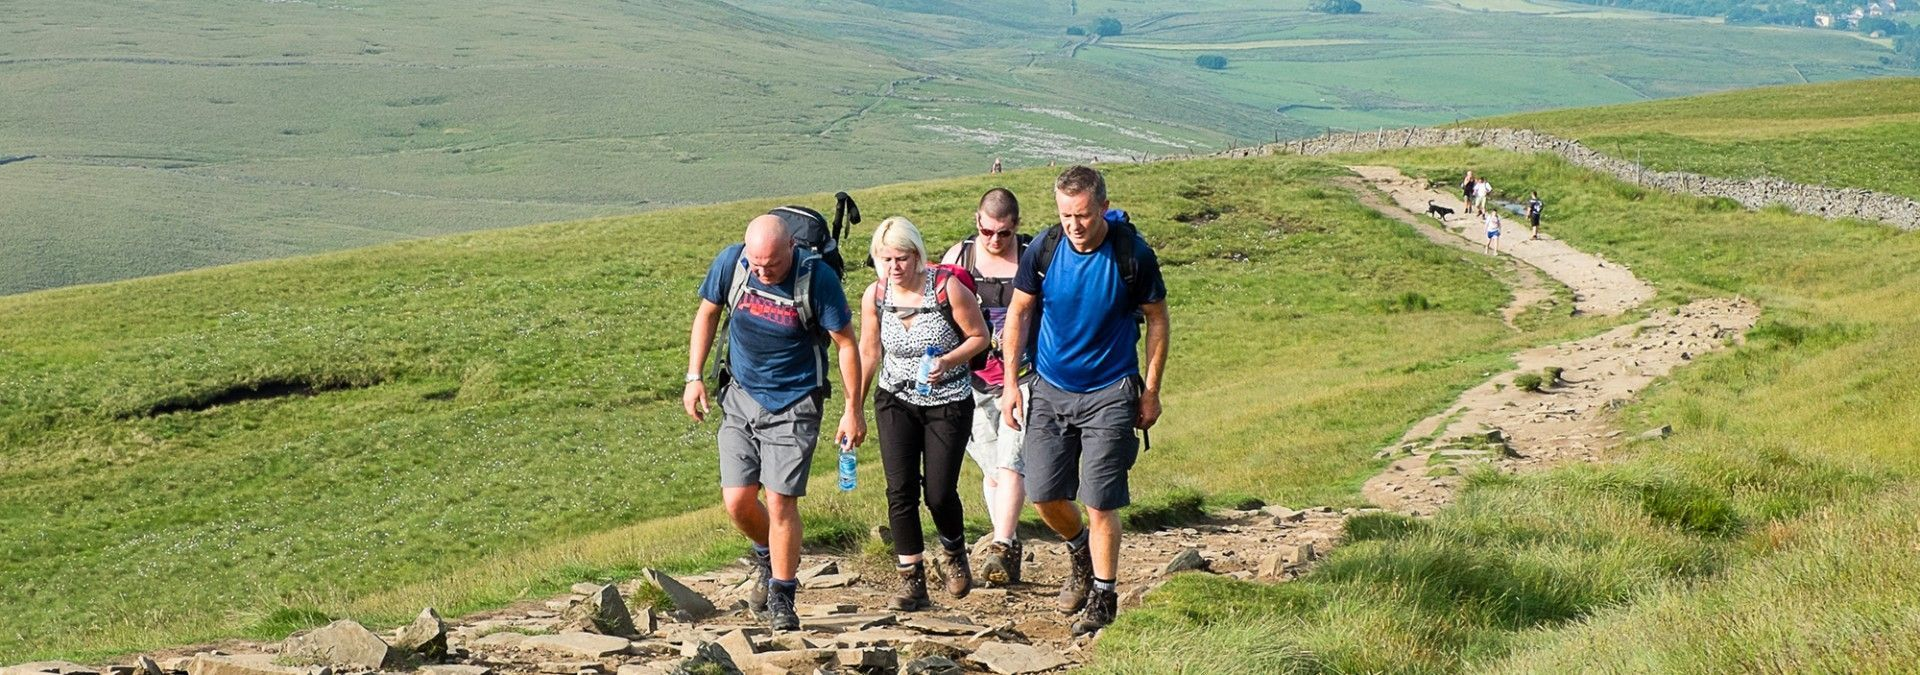 Group_trekking_Yorkshire_Three_Peaks.jpg